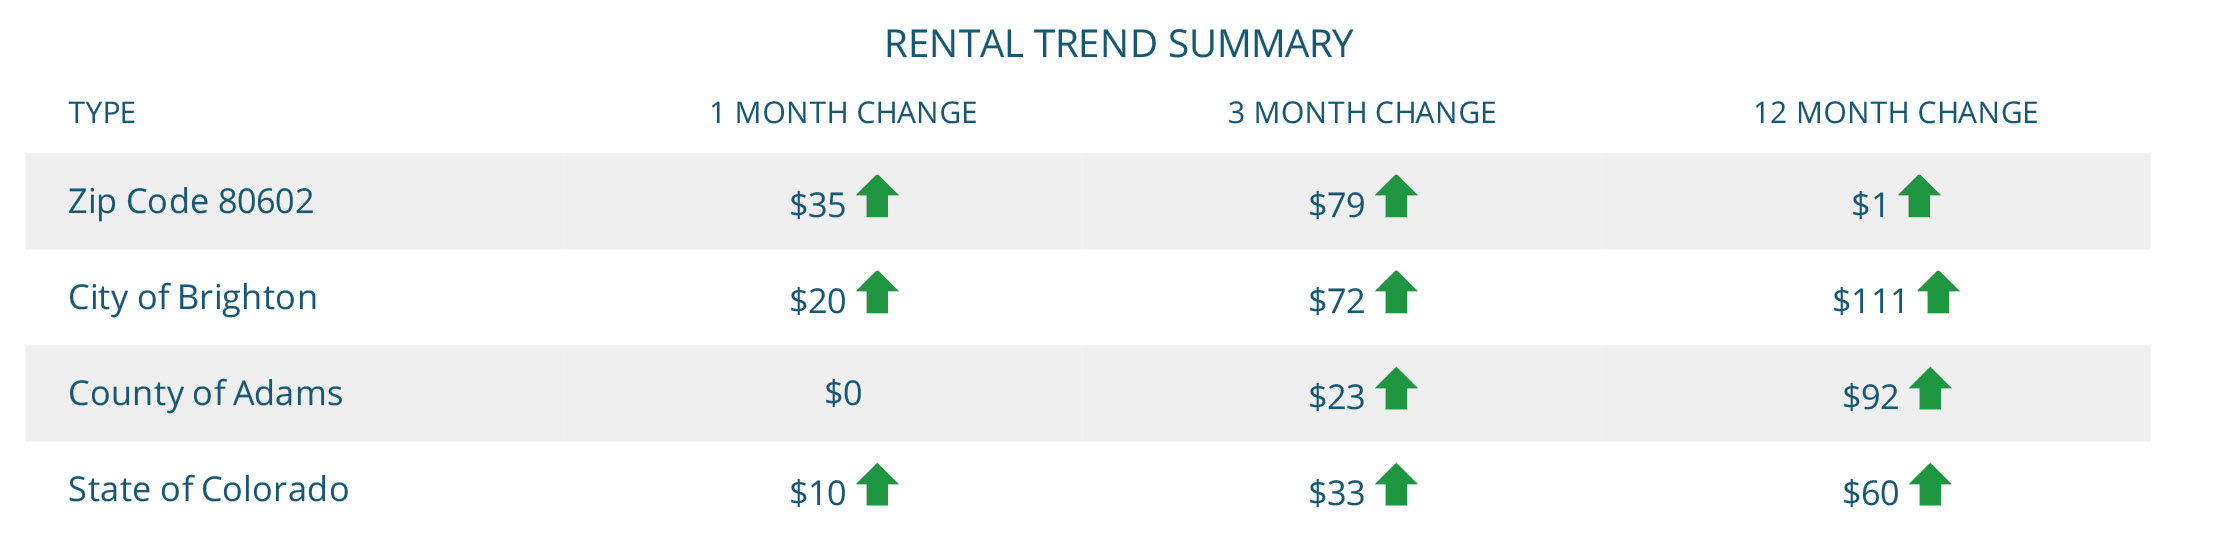 Brighton Rental Trend Summary